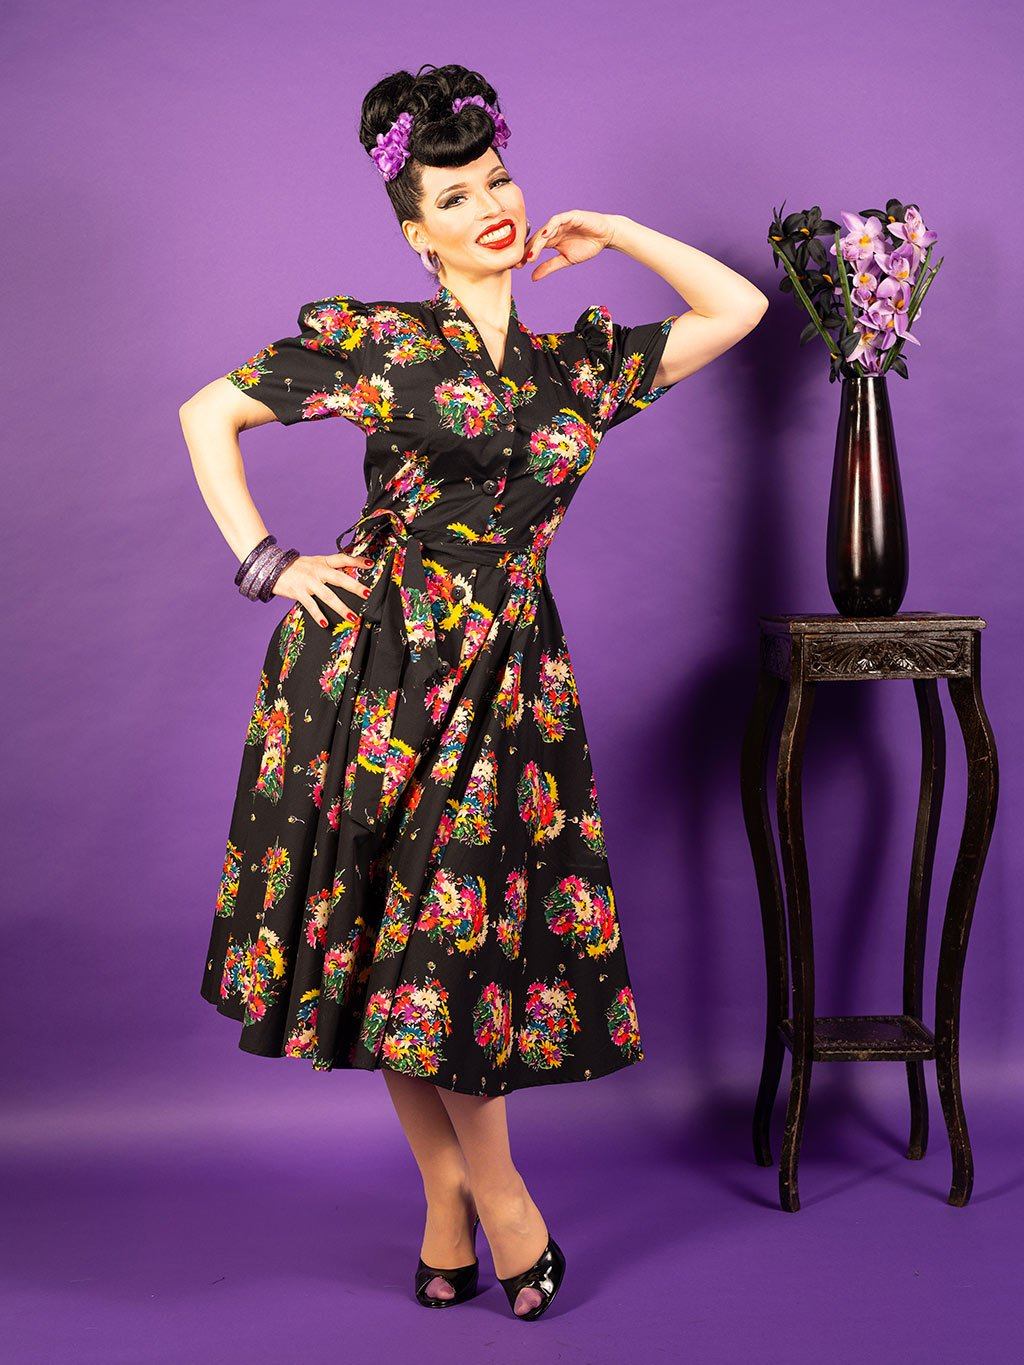 1950s floral dress.  Retro black cotton shirtwaist dress with floral print.  Fitted top with full skirt falling just below the knee.